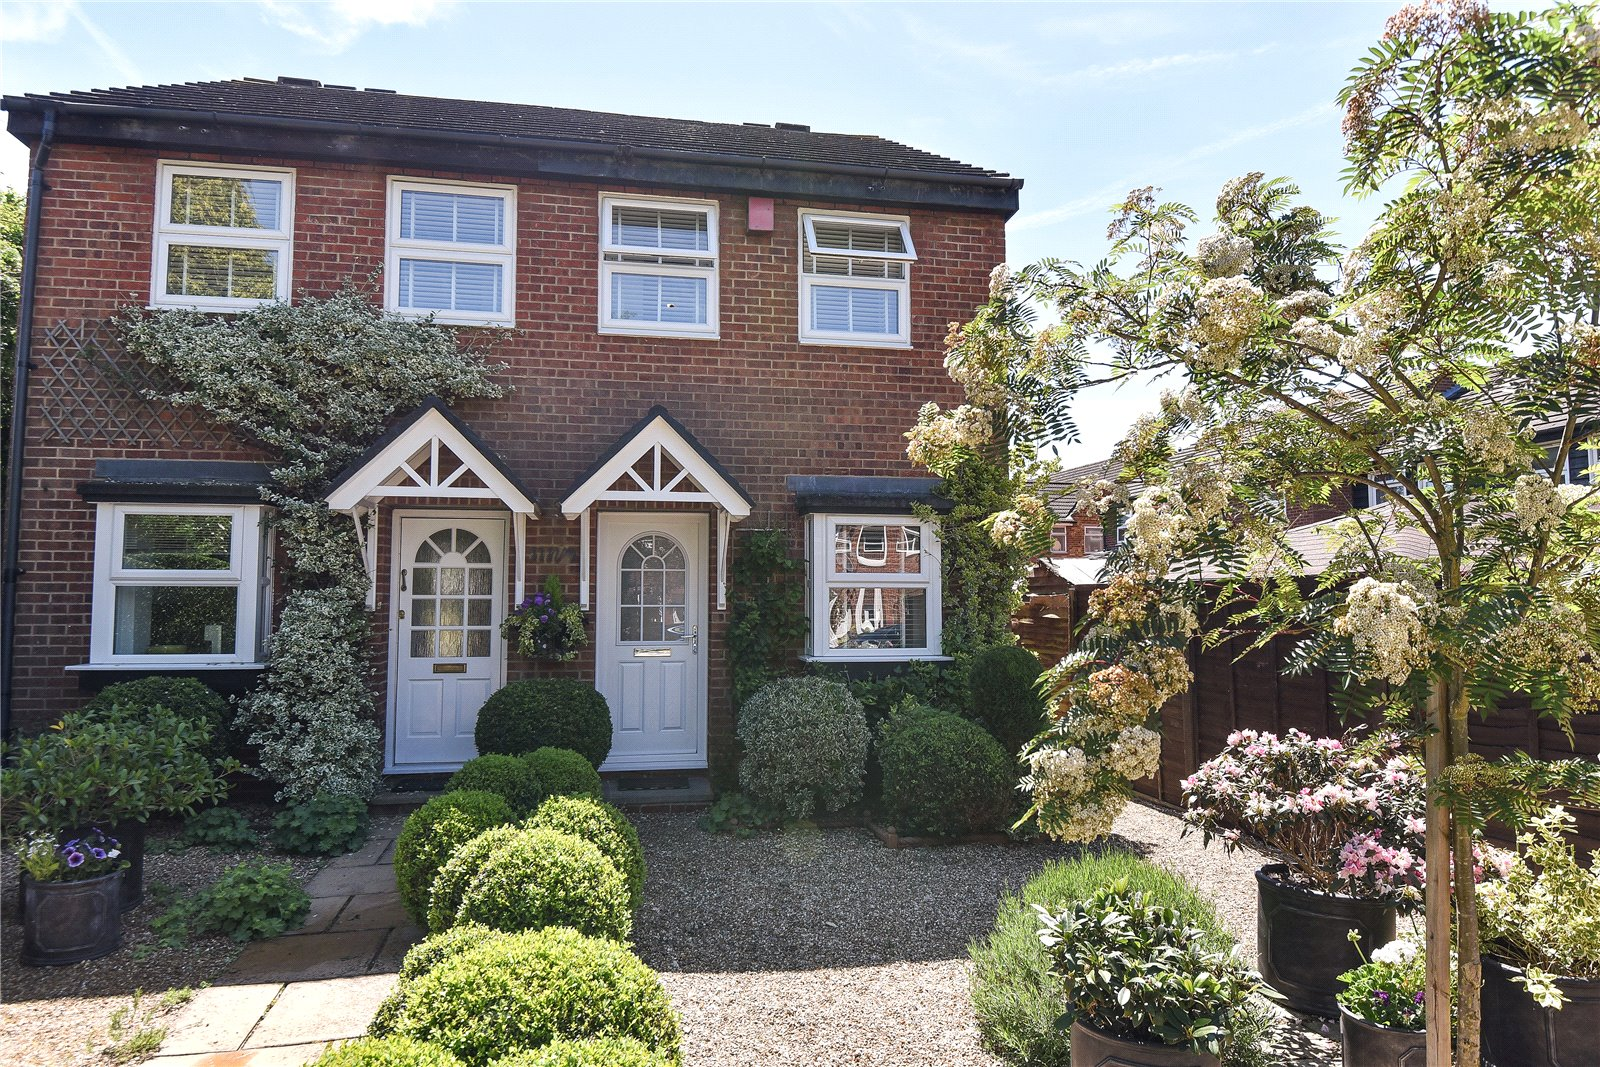 2 Bedrooms Semi Detached House for sale in Harkness Road, Burnham, Slough, Berkshire, SL1